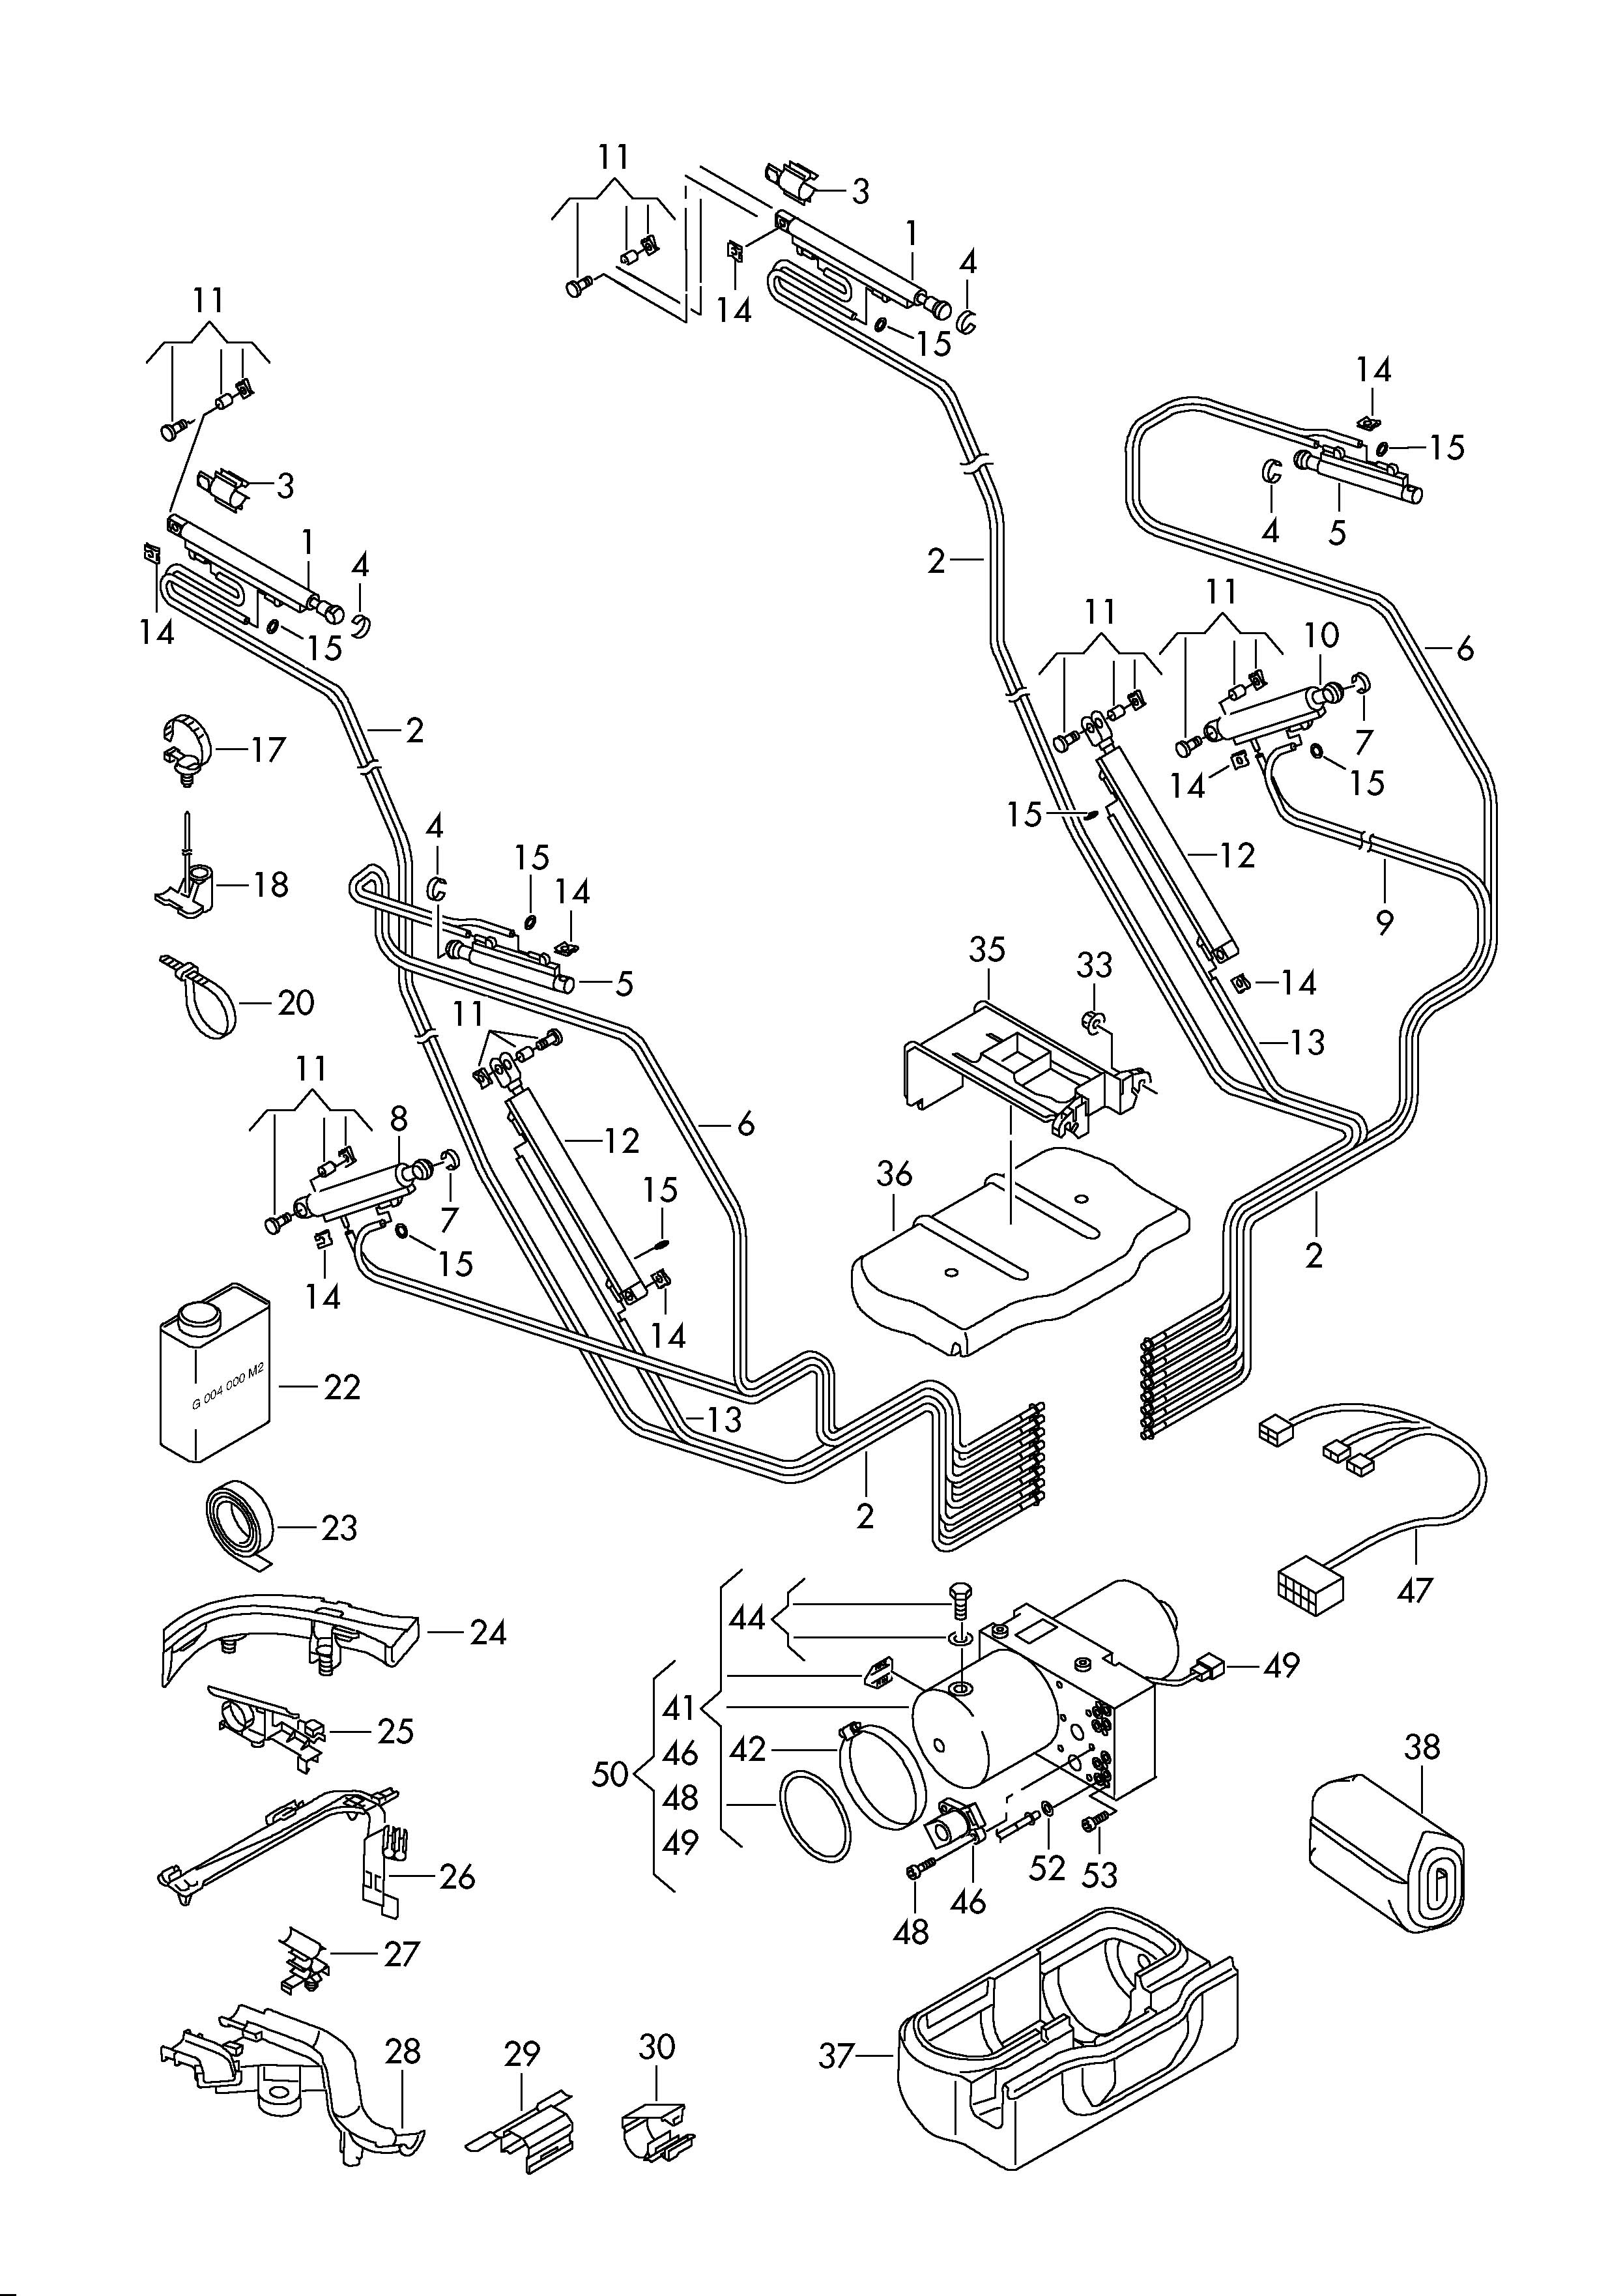 Volkswagen Rabbit Wiring Diagram